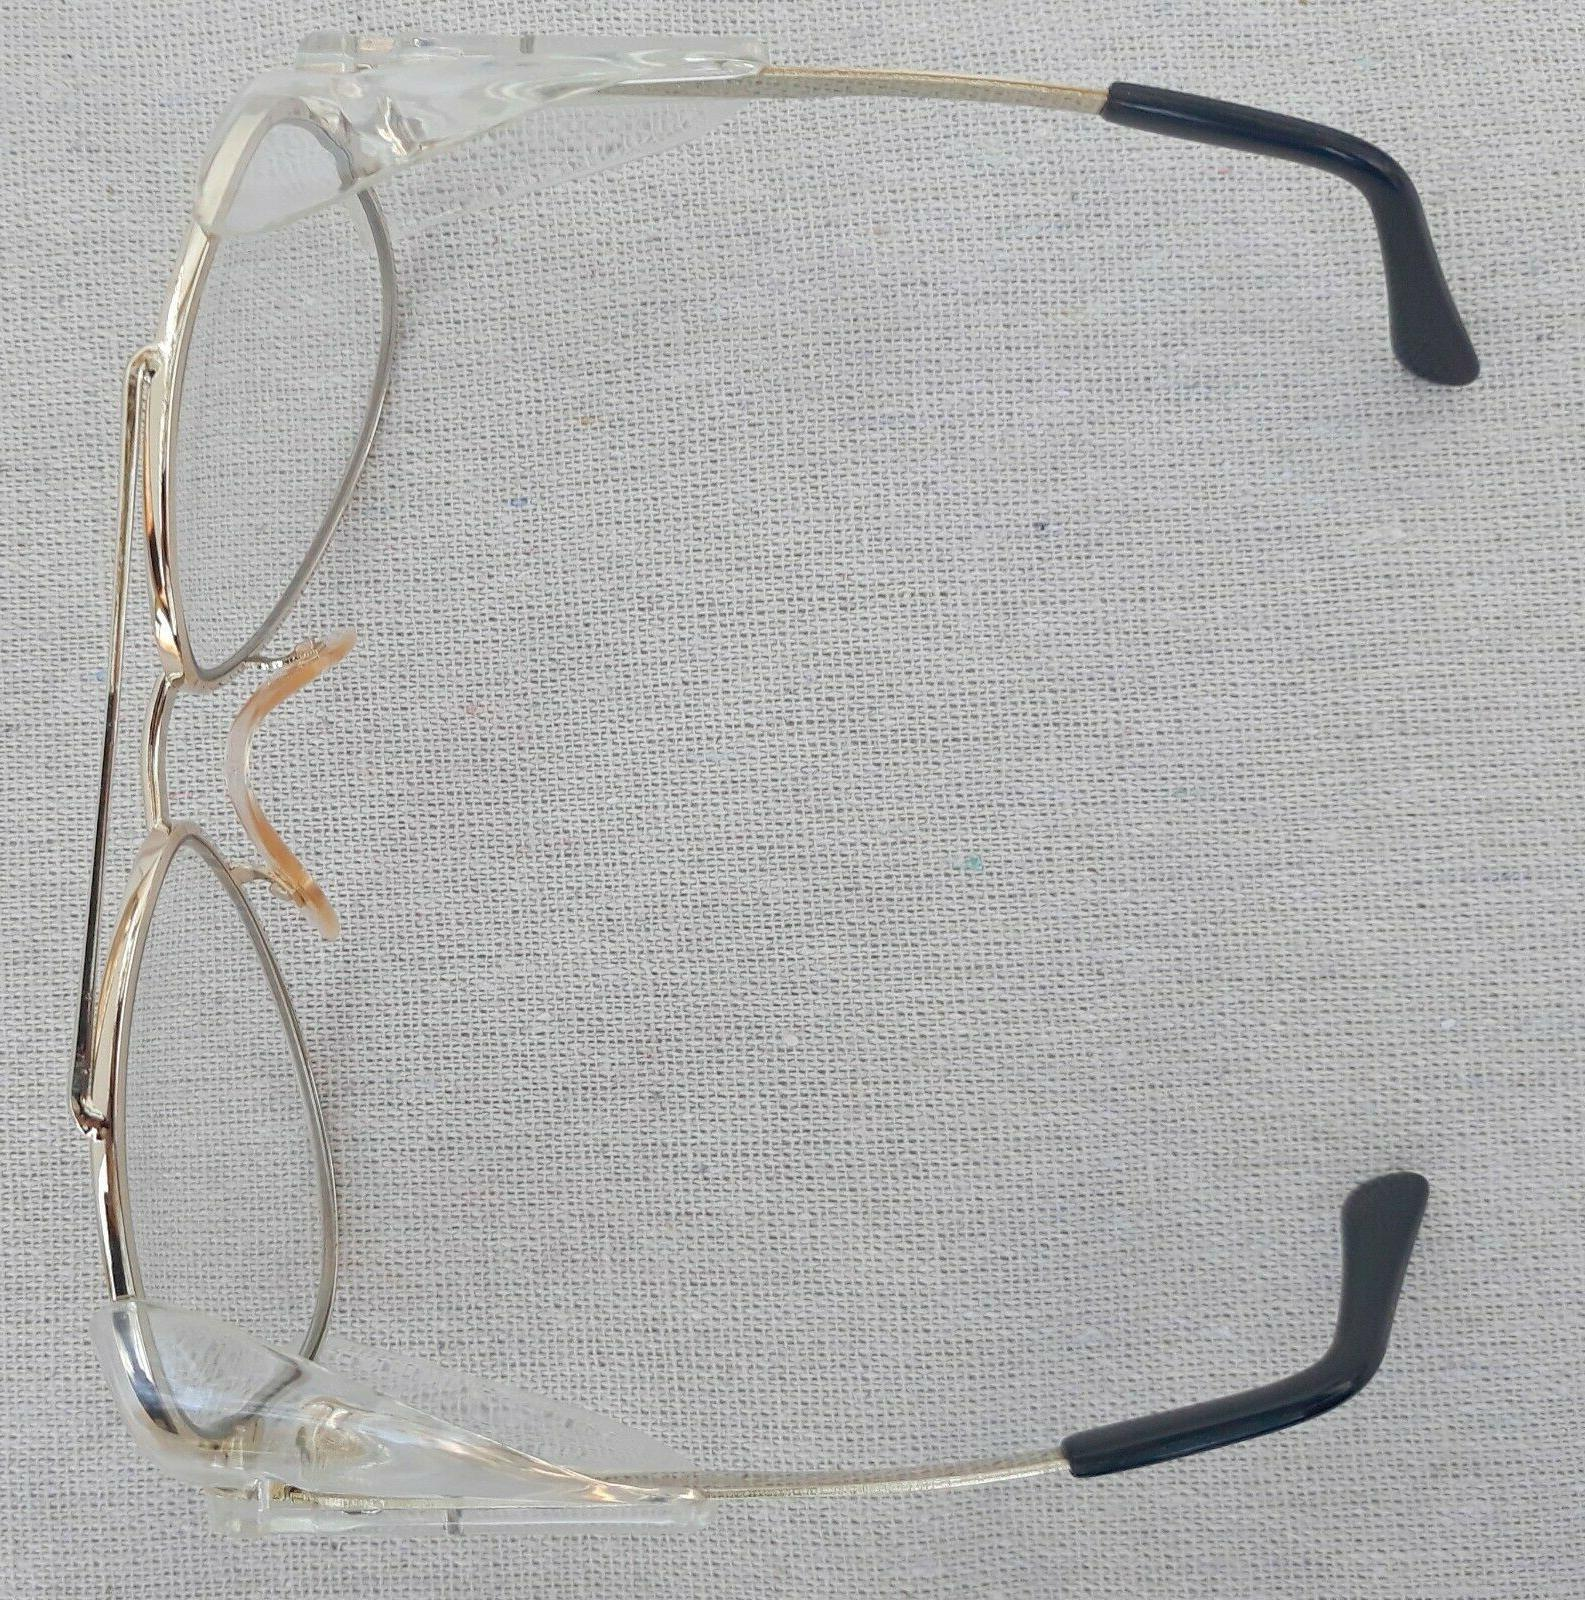 Bouton Aviator Glasses With Side Shields Z87.1